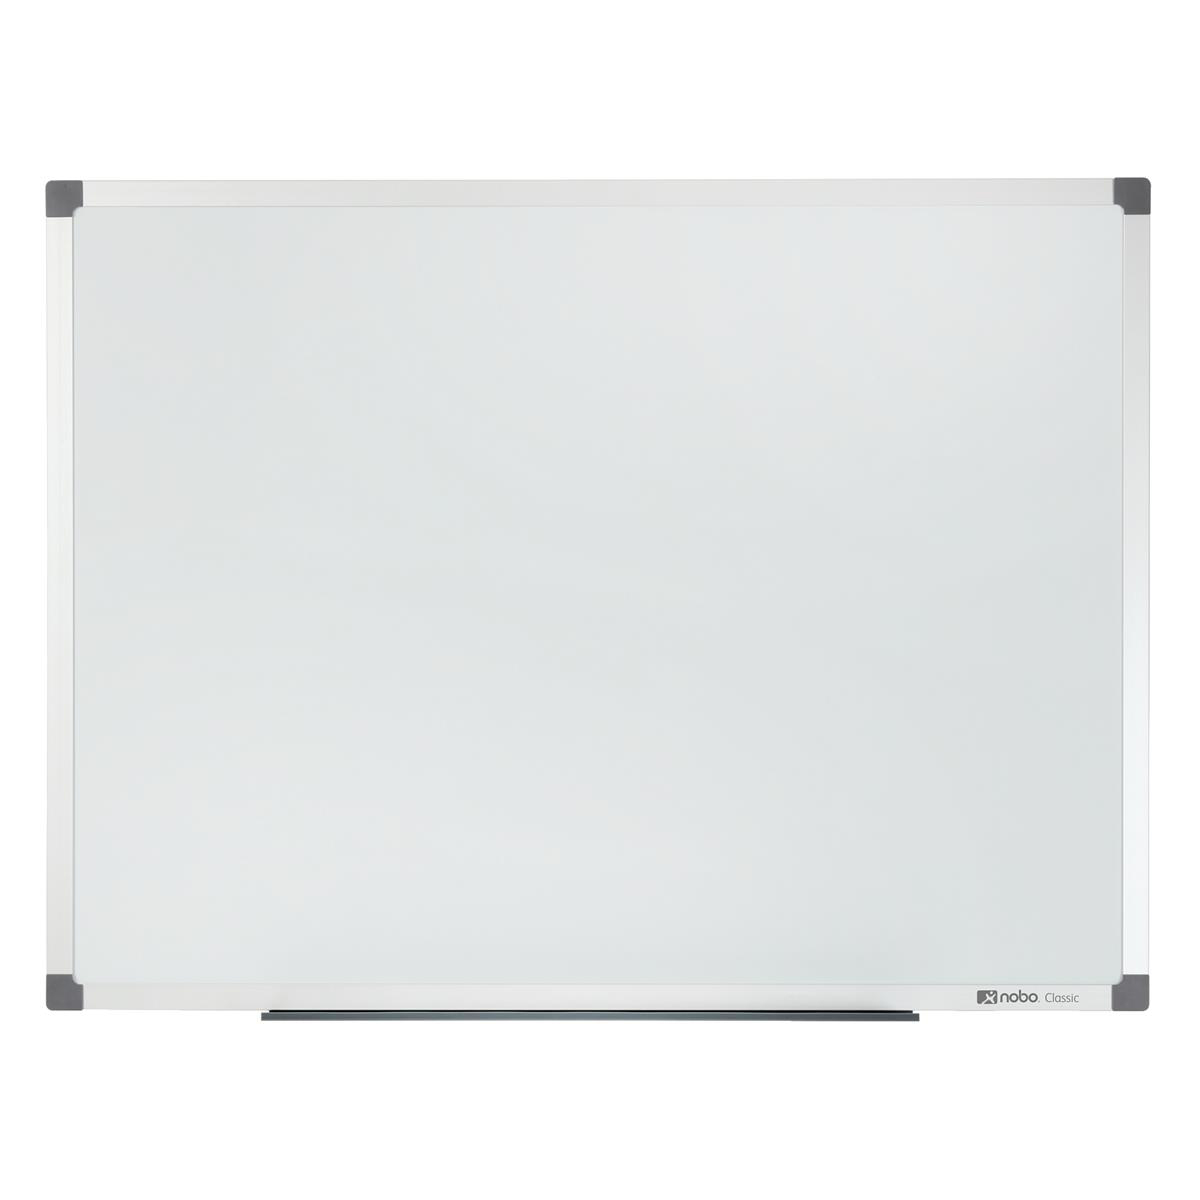 Nobo Classic Drywipe Board Magnetic with Fixings 1800x900mm Aluminium Ref 1902645 [COMPETITION]